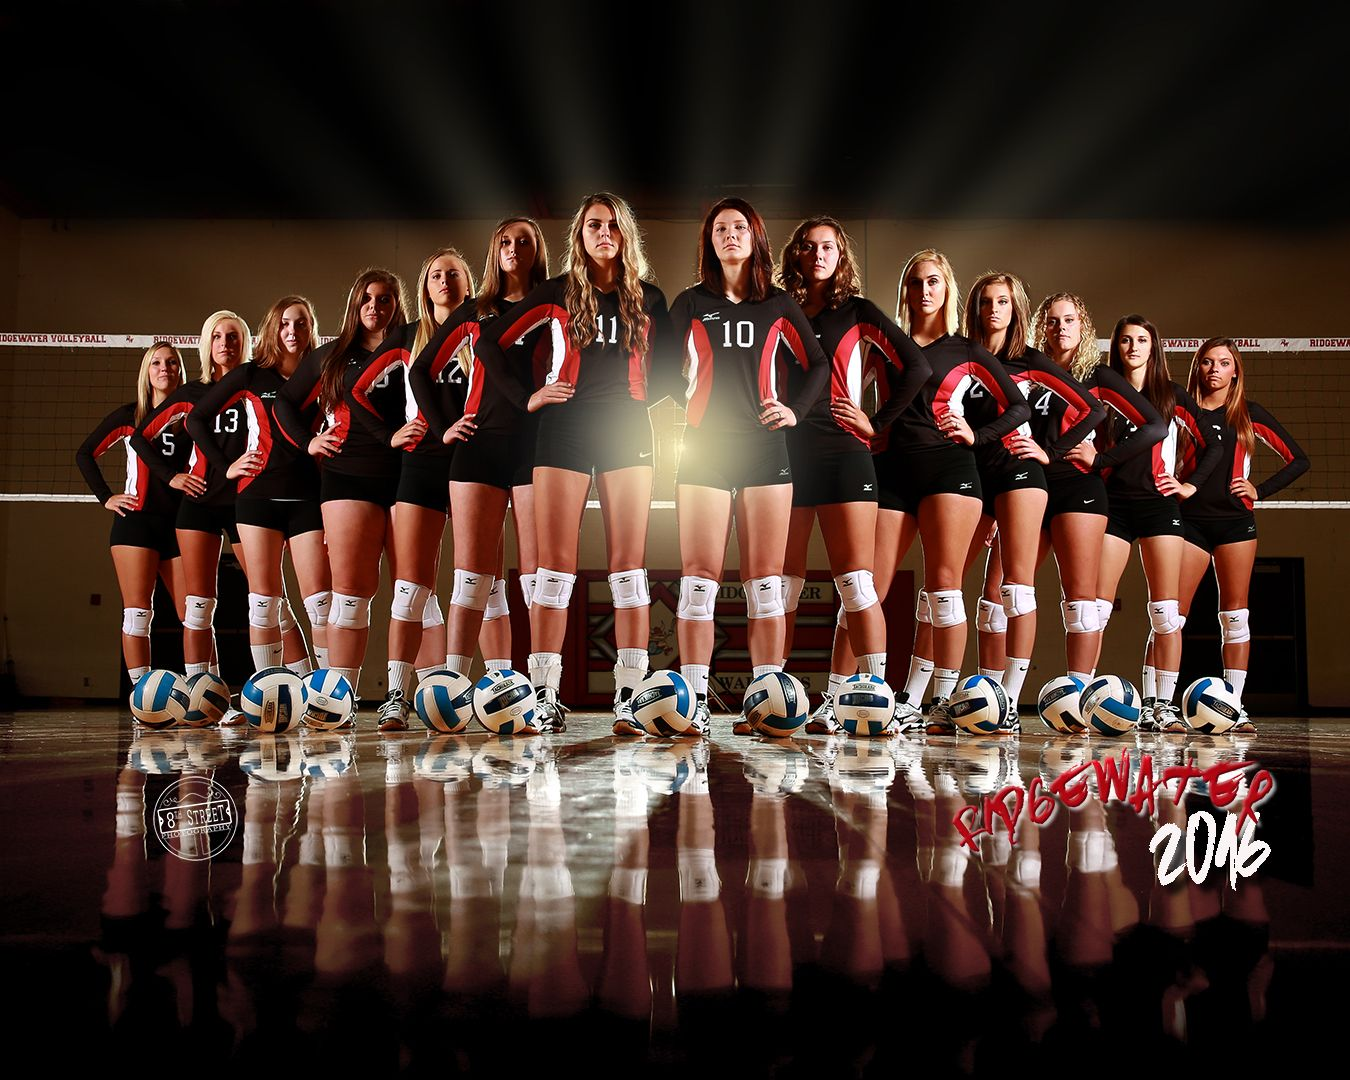 Willmar Ridgewater Volleyball Team Cool Volleyball Photography Basketball Team Pictures Volleyball Team Pictures